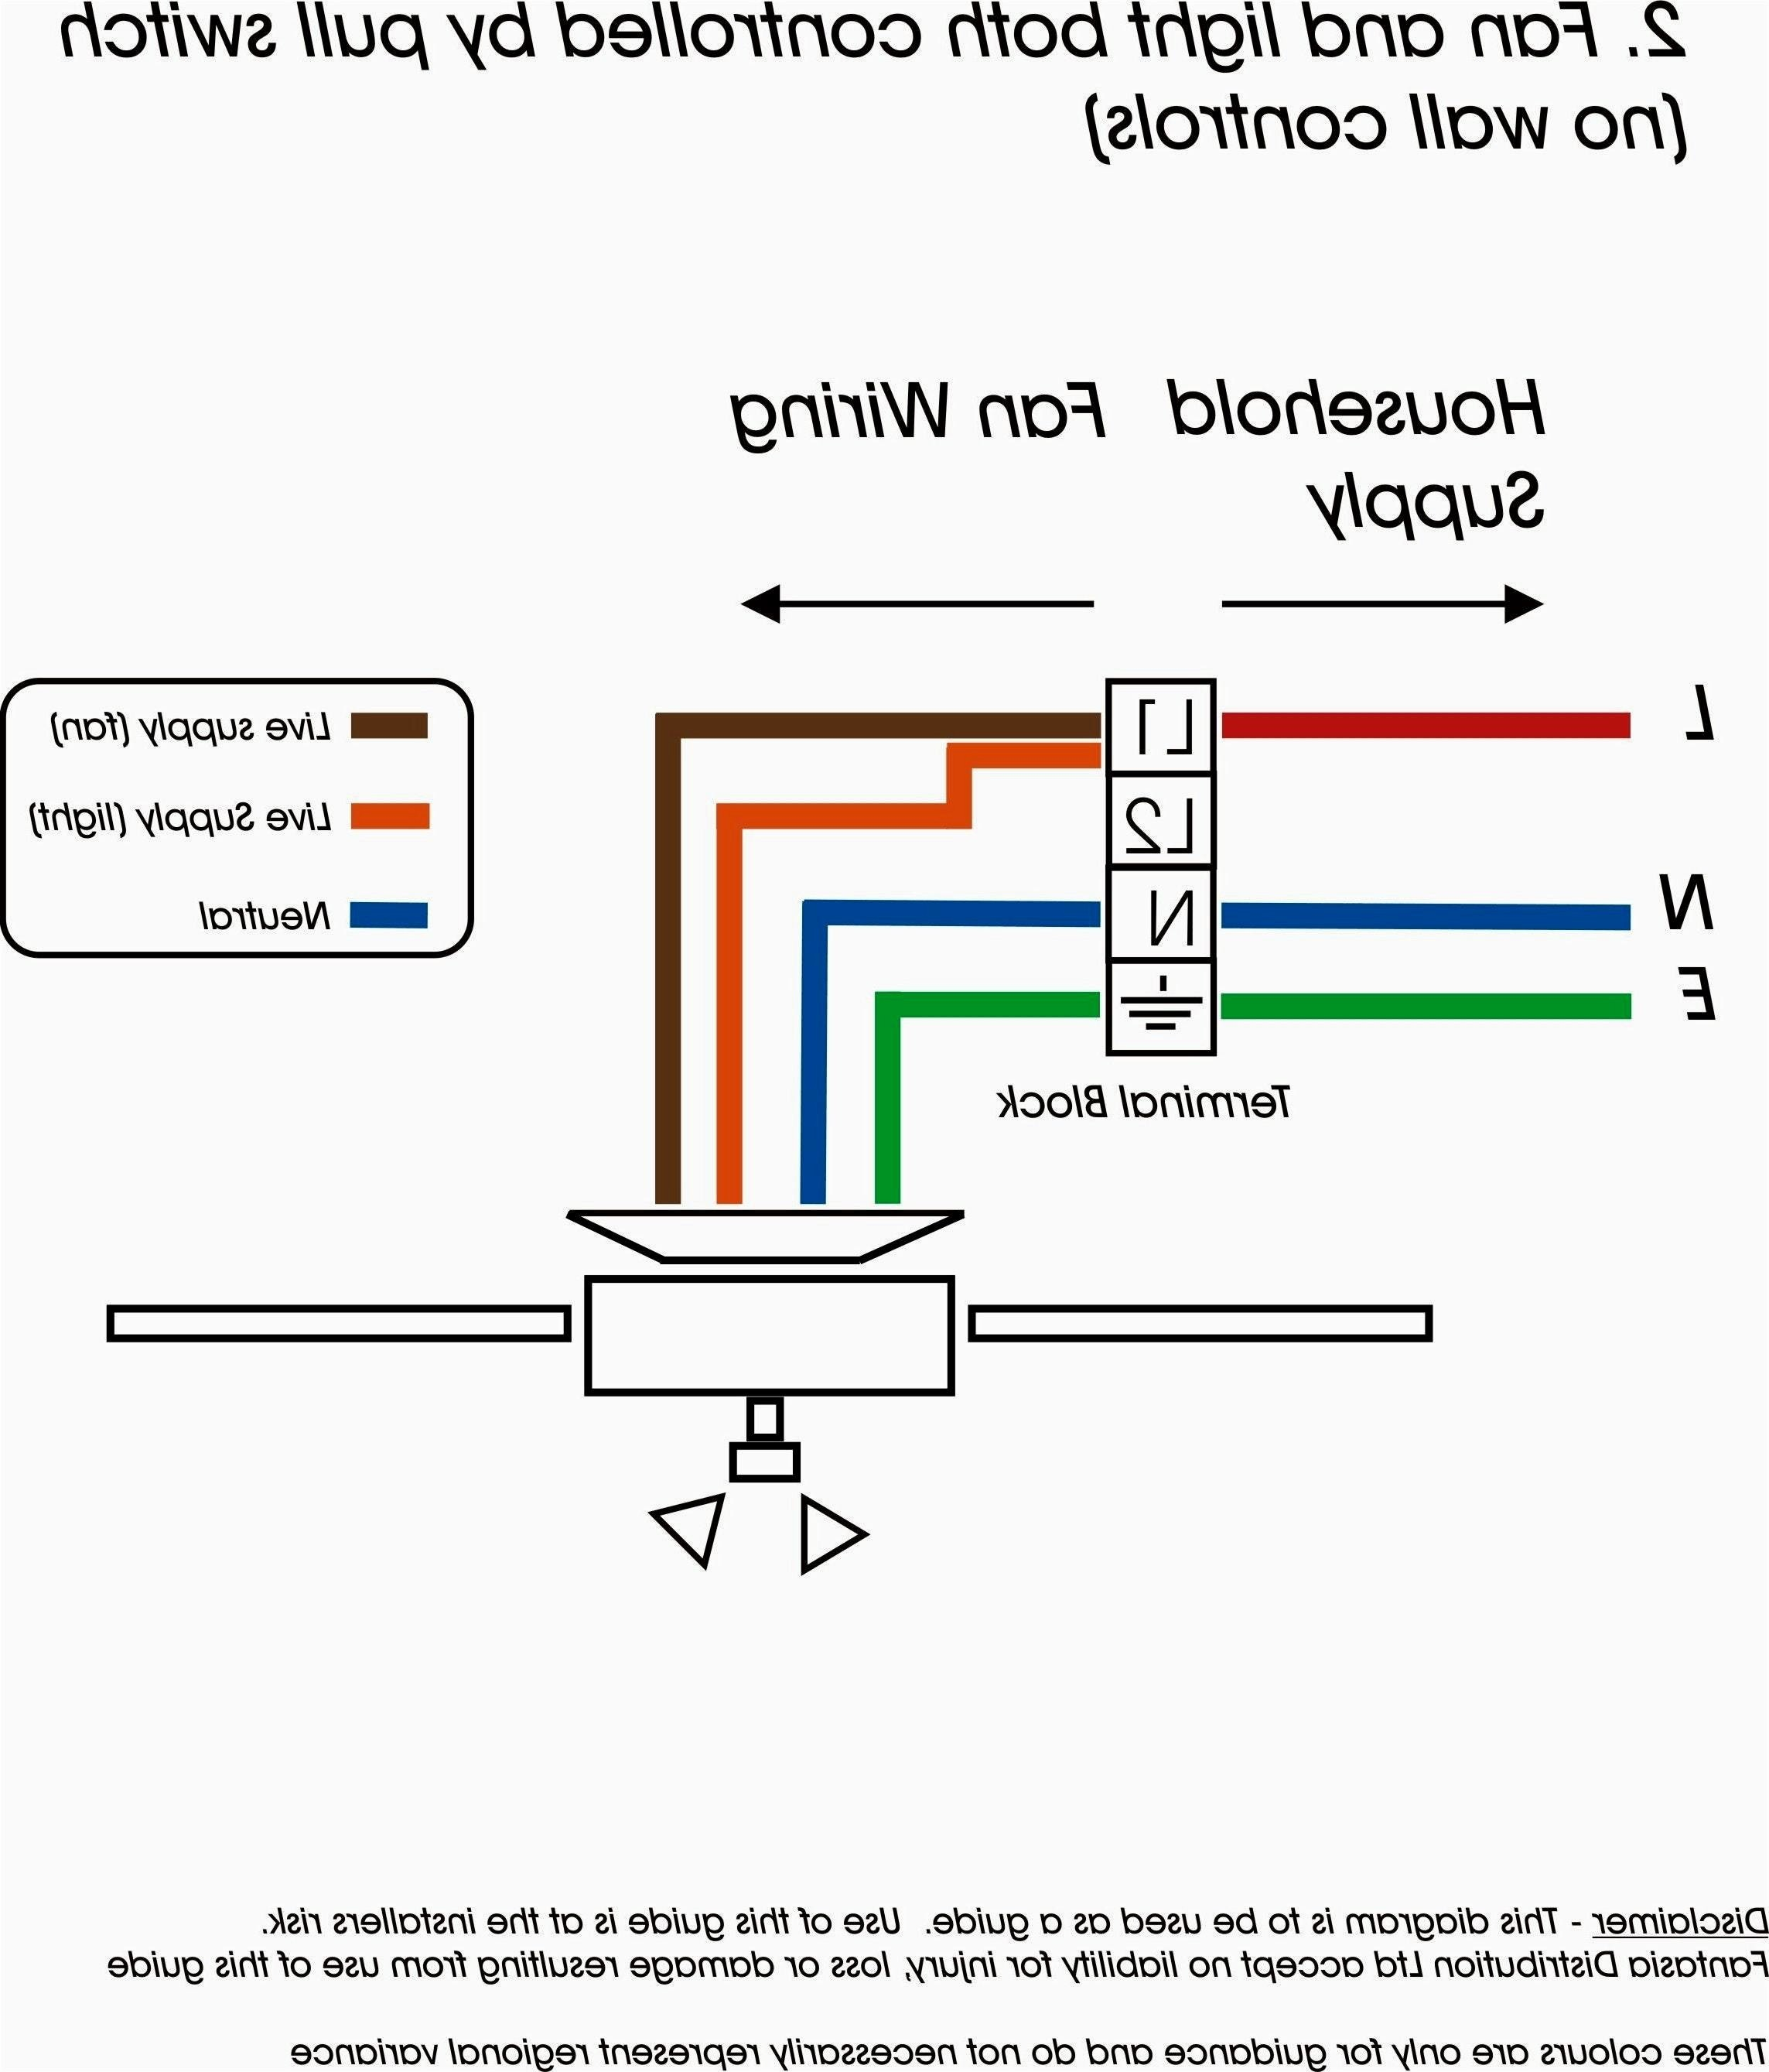 franklin electric motor wiring diagram 2000 nissan frontier tail light ao smith pool pump my